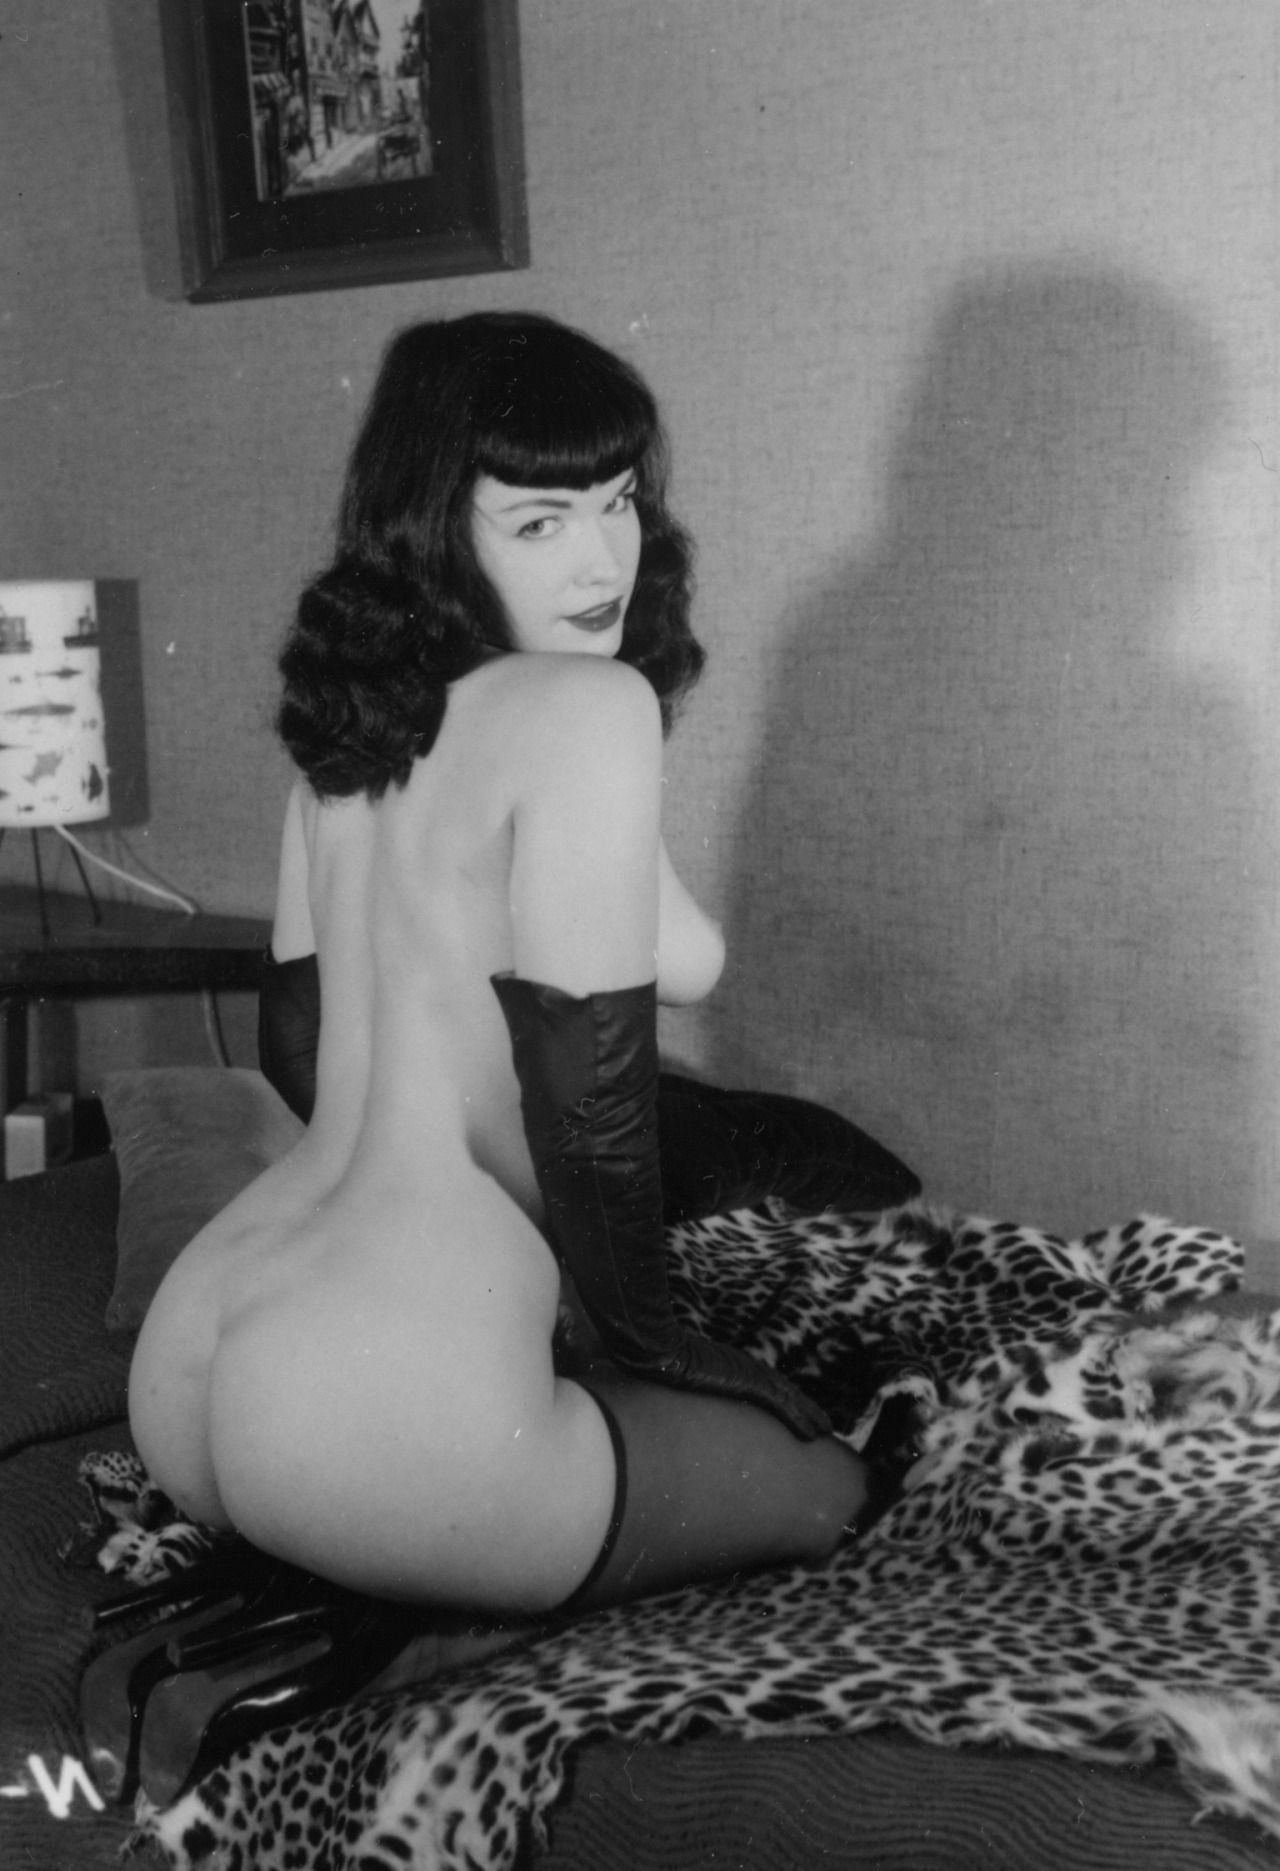 Bettie page tumblr